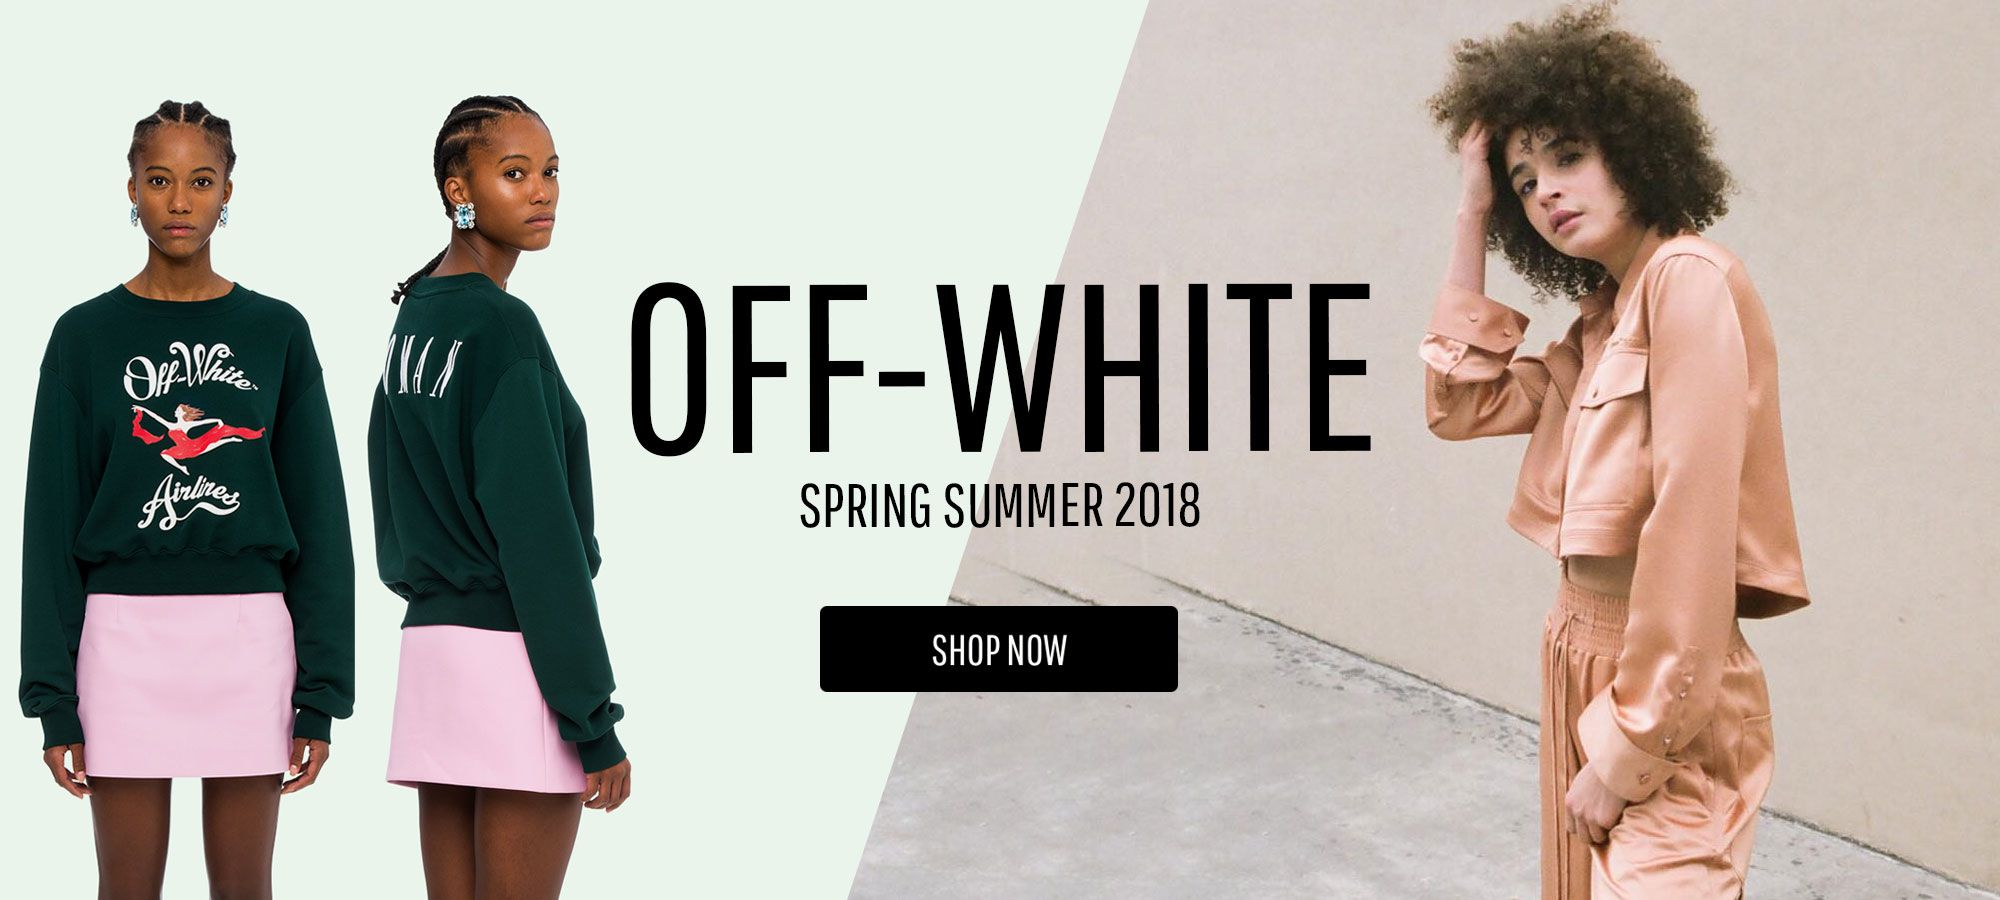 Off White Women - Spring Summer 2018